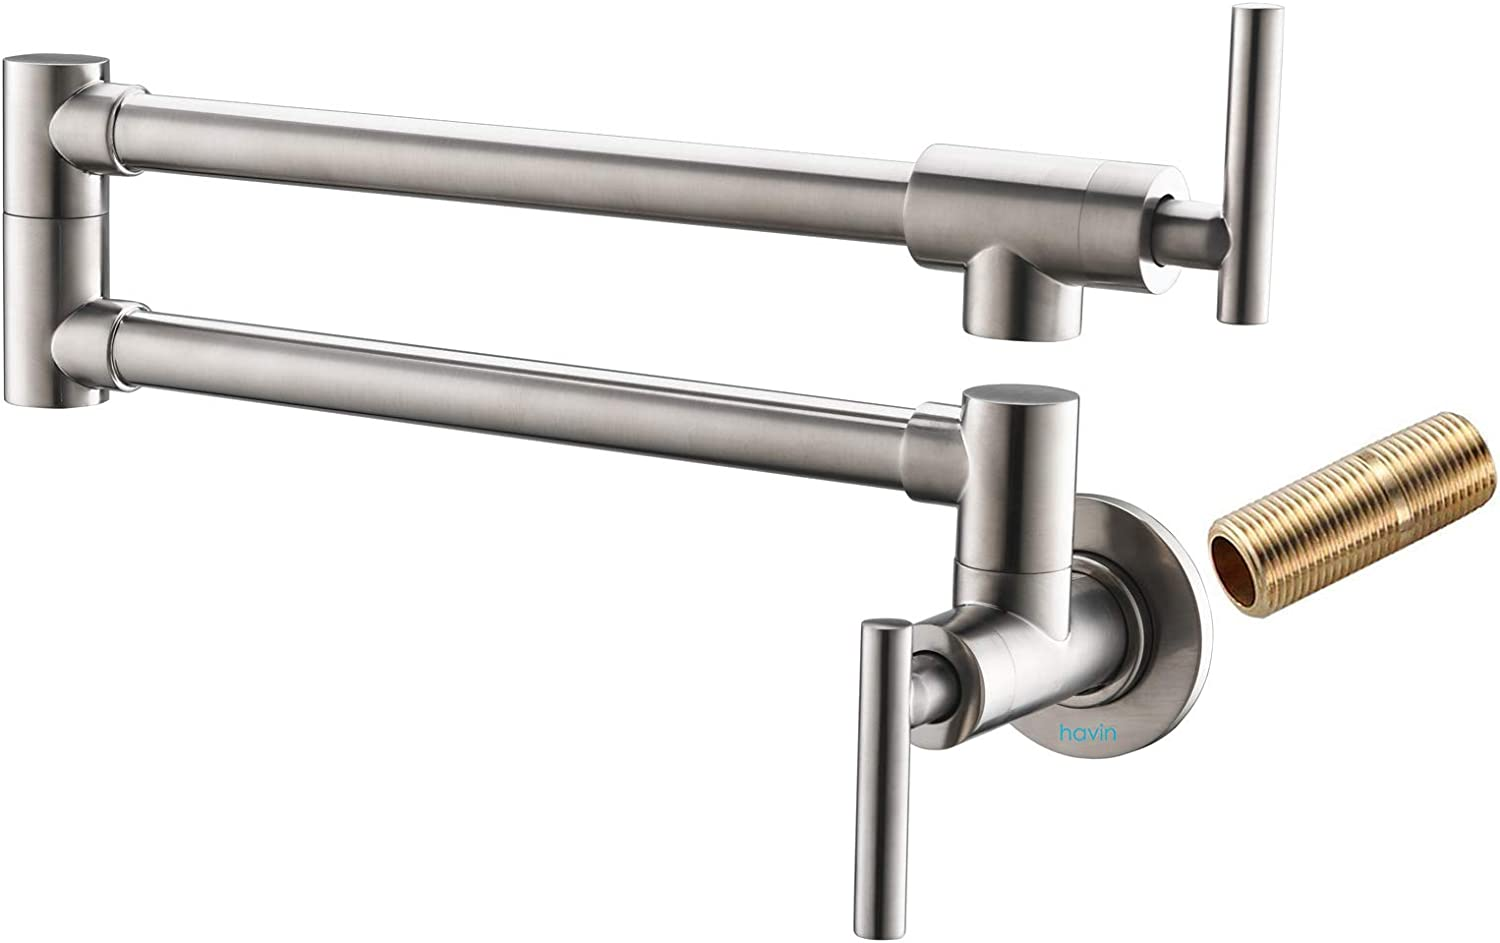 Havin Pot Filler Popular brand in the world Faucet Wall It is very popular Mount Arms Swing Double with Joint